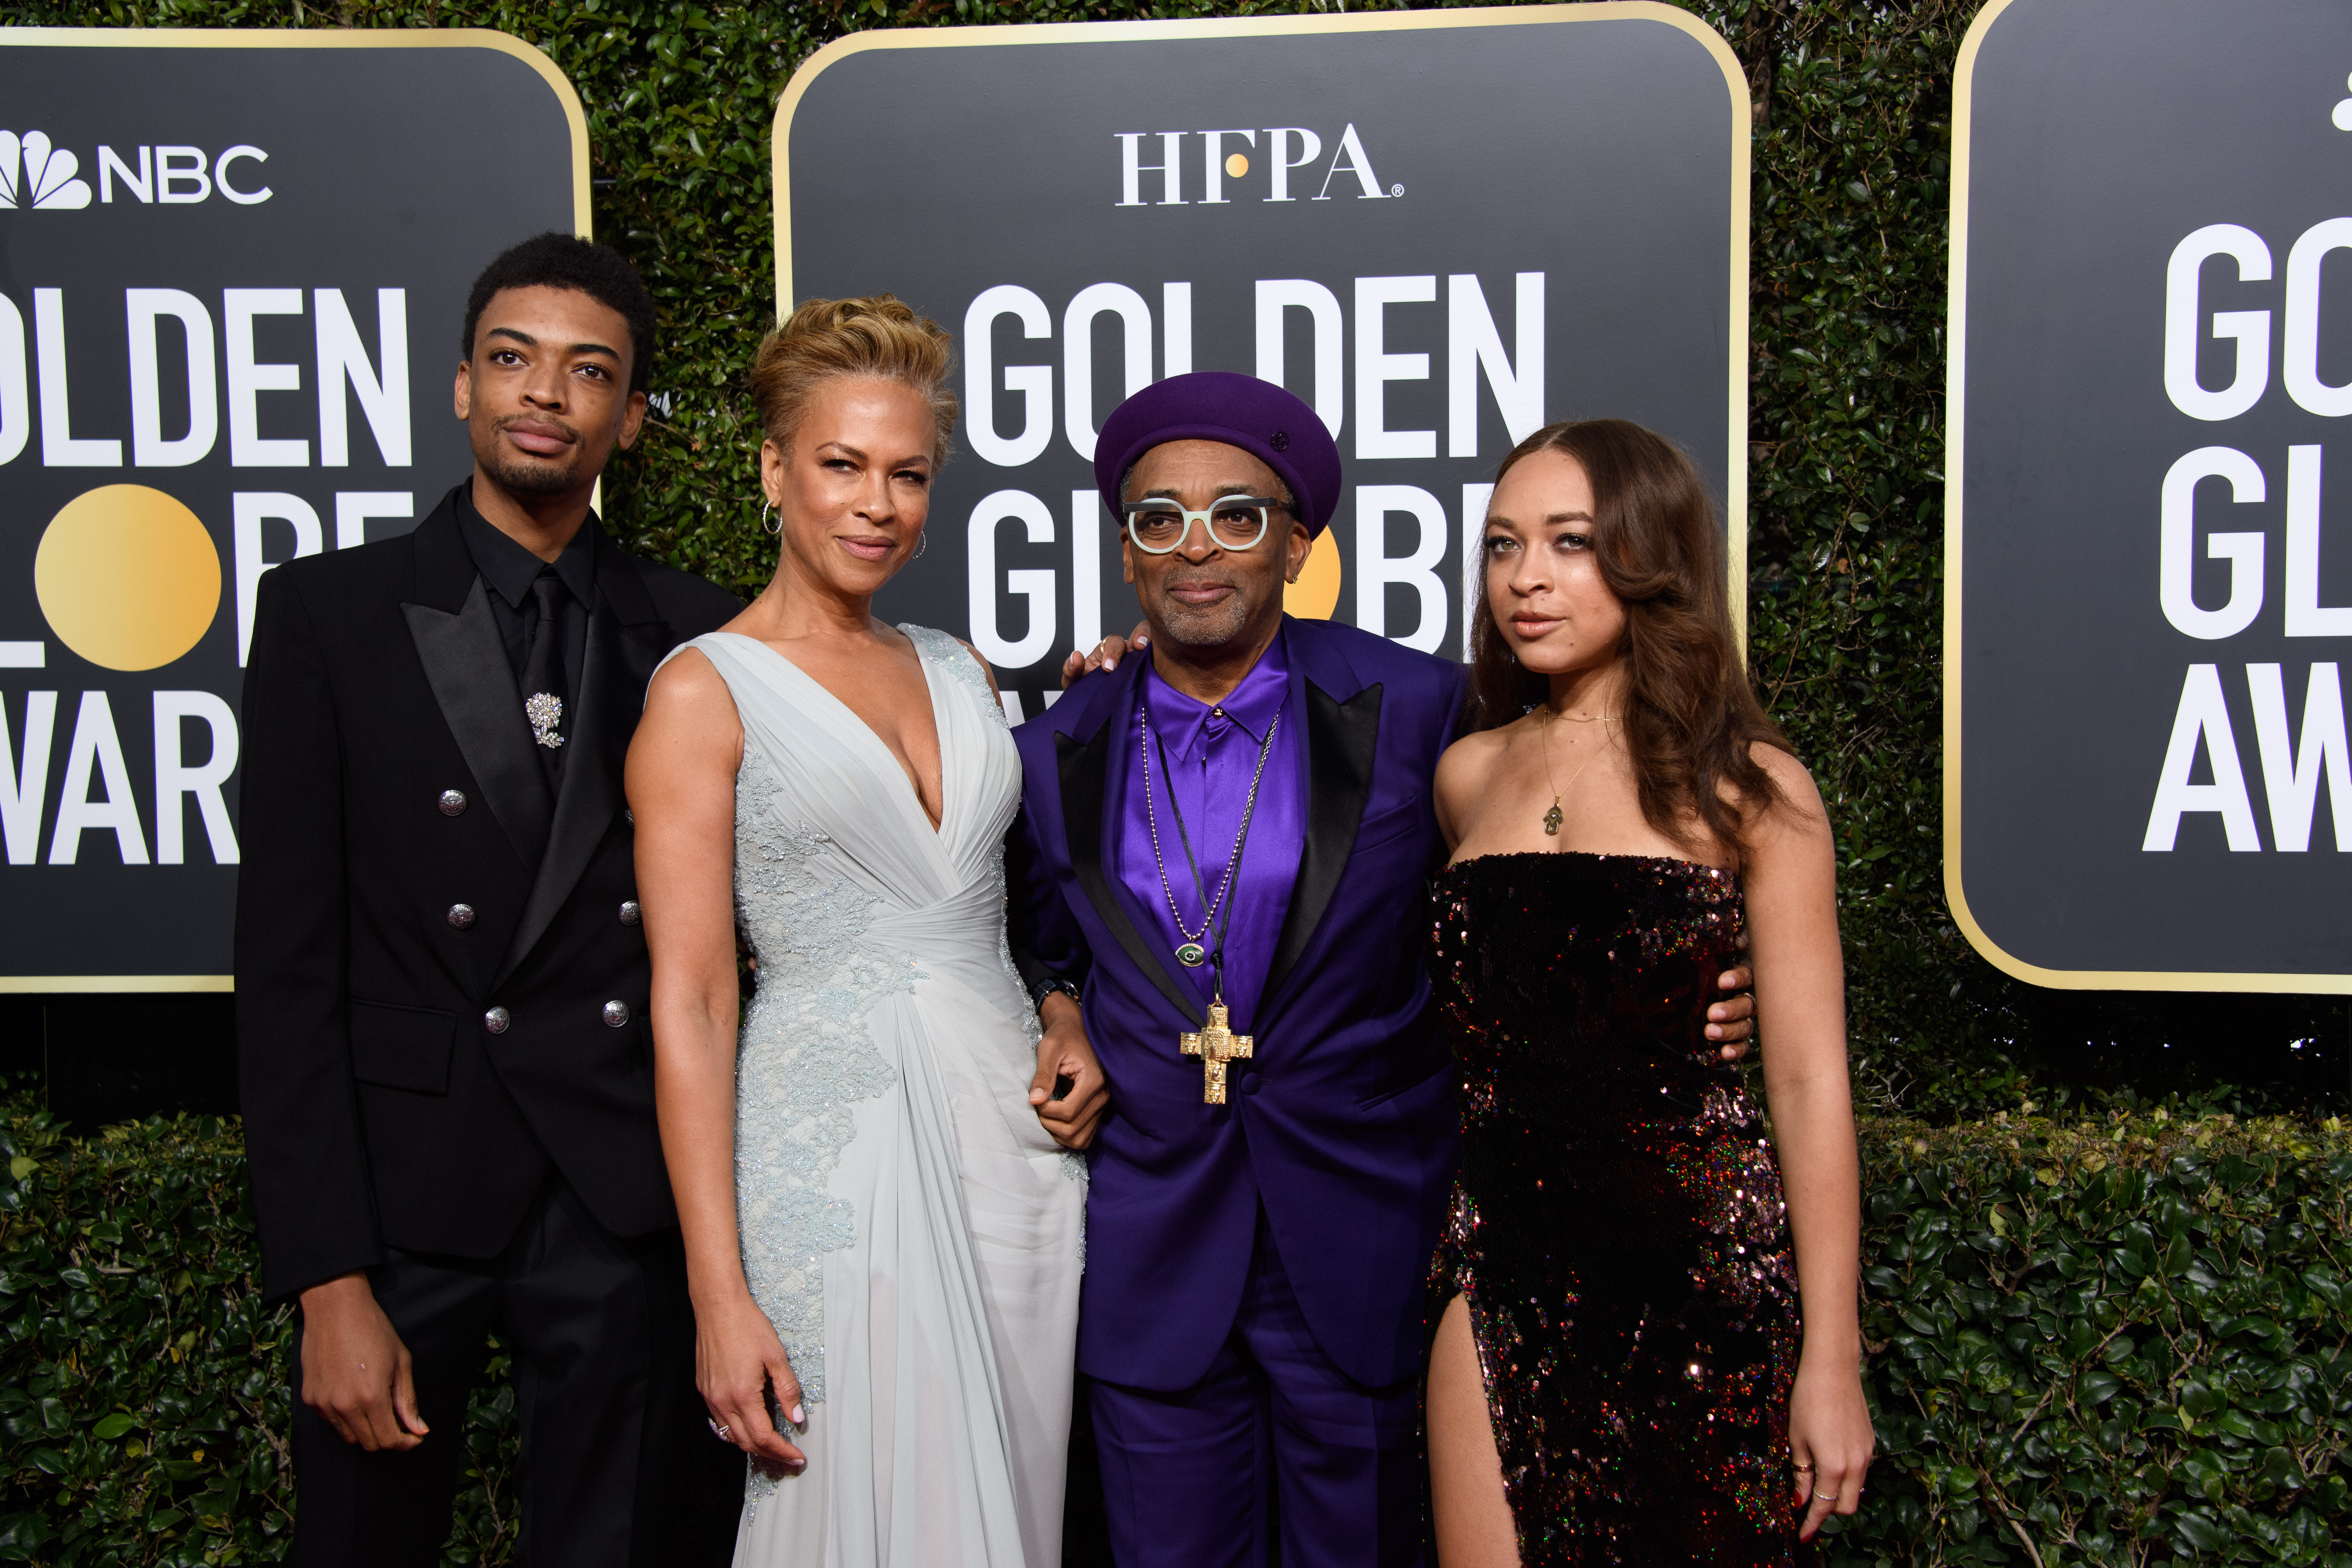 Jackson Lee, Tonya Lewis Lee, Golden Globe nominee, Spike Lee, and Satchel Lee arrive at the 76th Annual Golden Globe Awards at the Beverly Hilton in Beverly Hills, CA on Sunday, January 6, 2019.